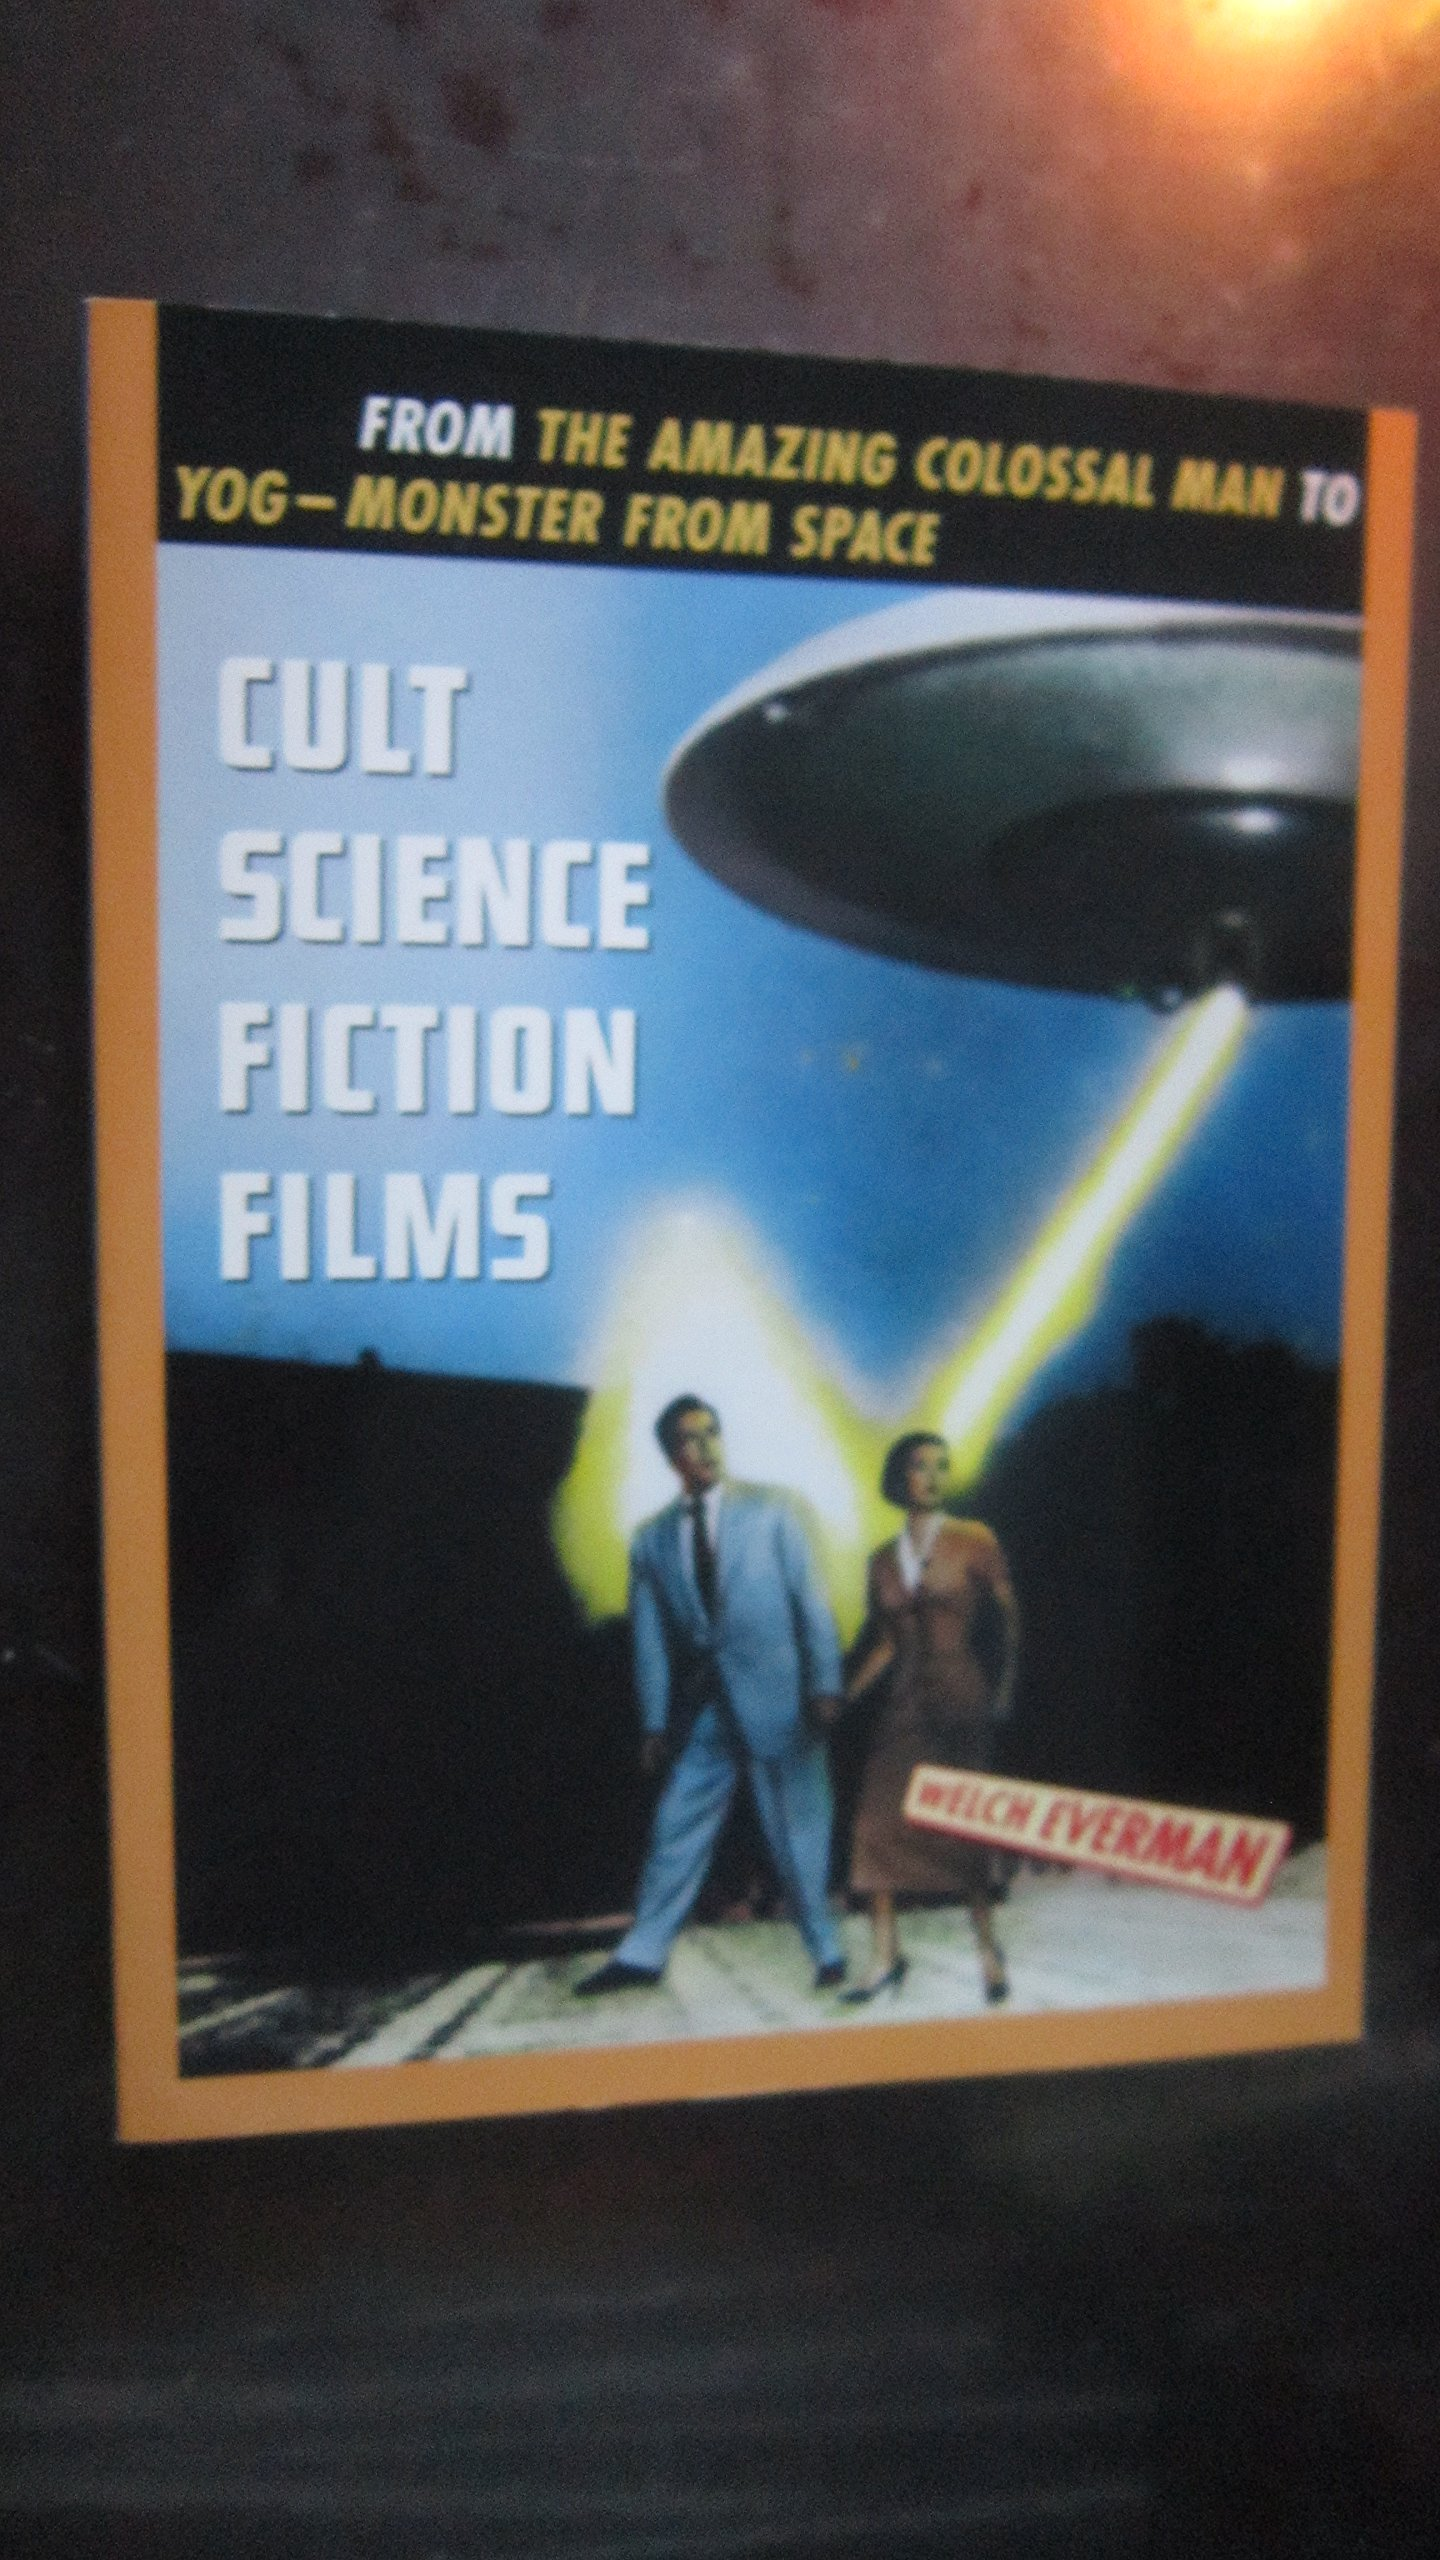 """Cult Science Fiction Films: From """"The Amazing Colossal Man"""" to """"Yog - The  Monster from Space"""" (Citadel Film Series): Amazon.co.uk: Welch."""